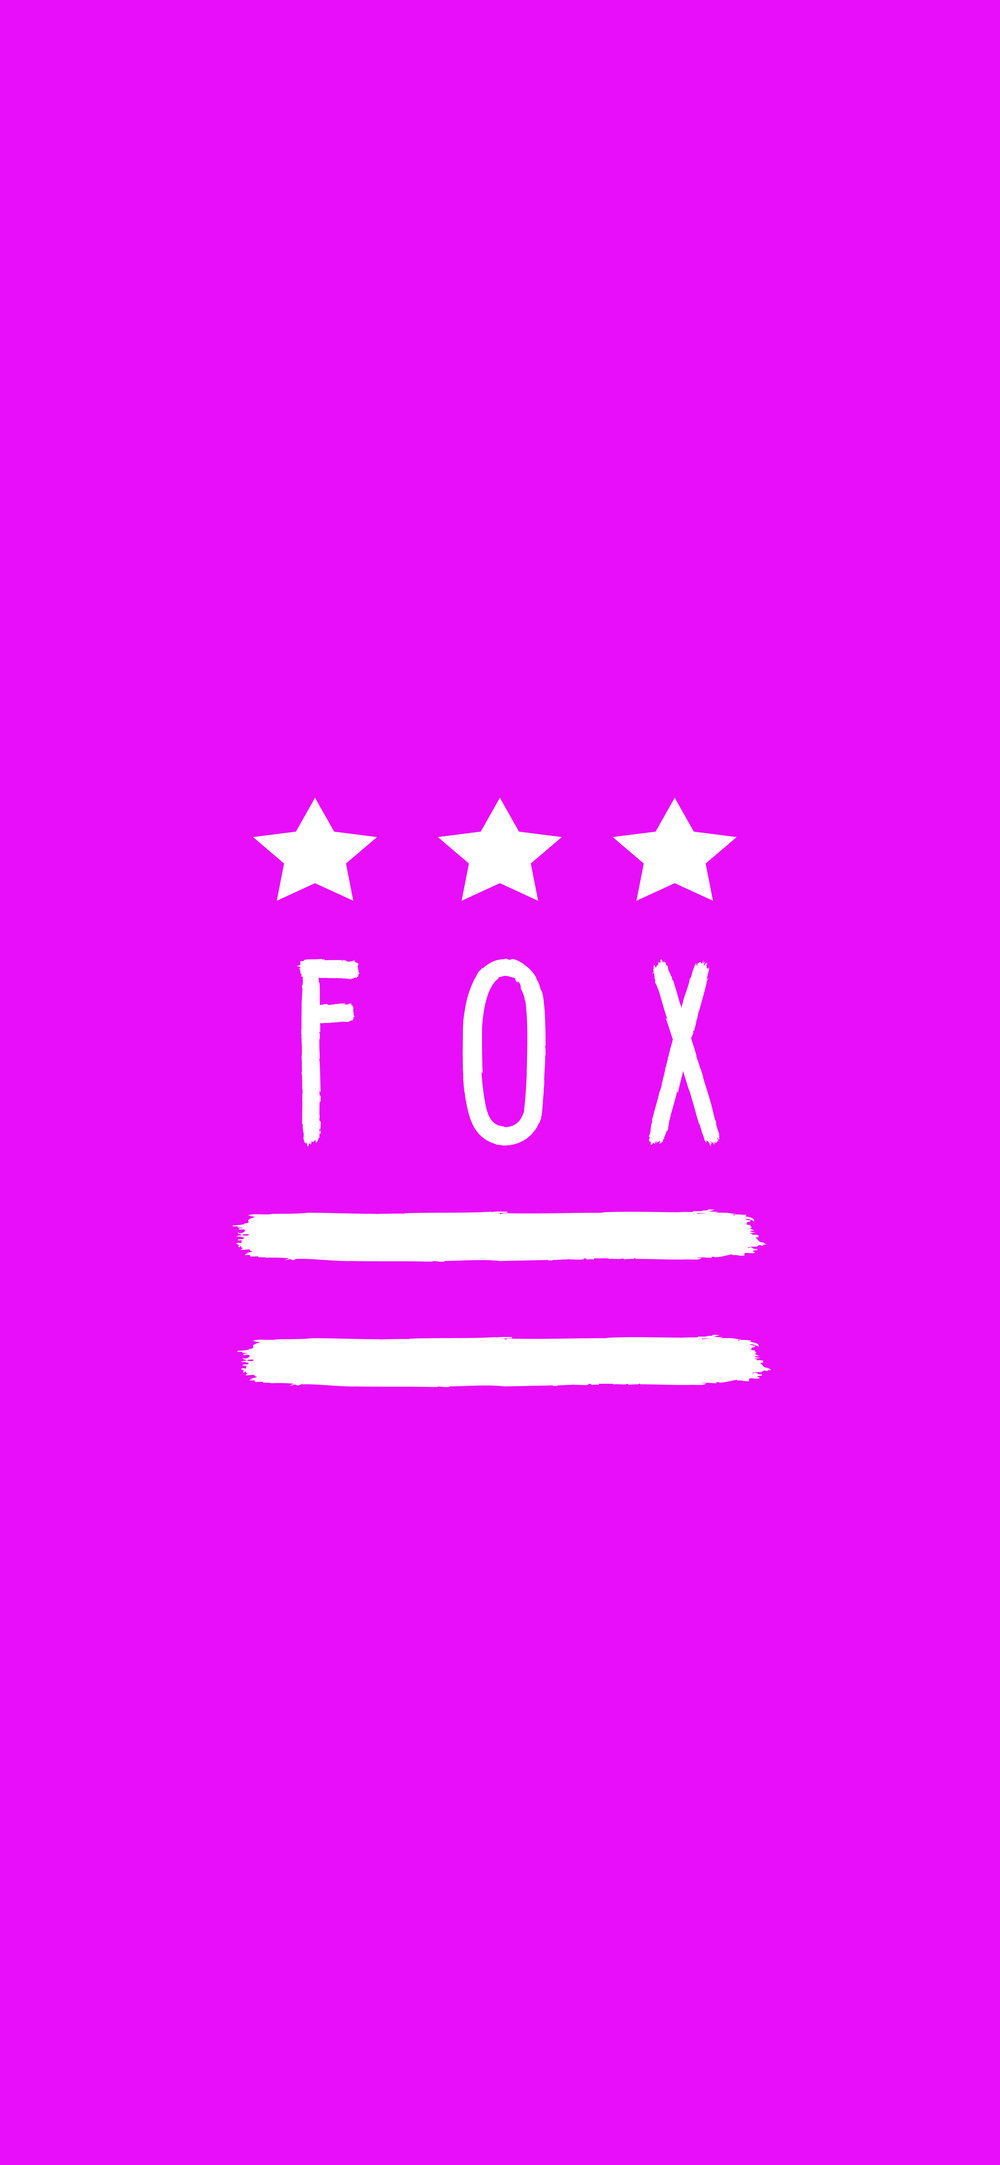 iPhone X BG - Stars Stripes Pink White.jpg